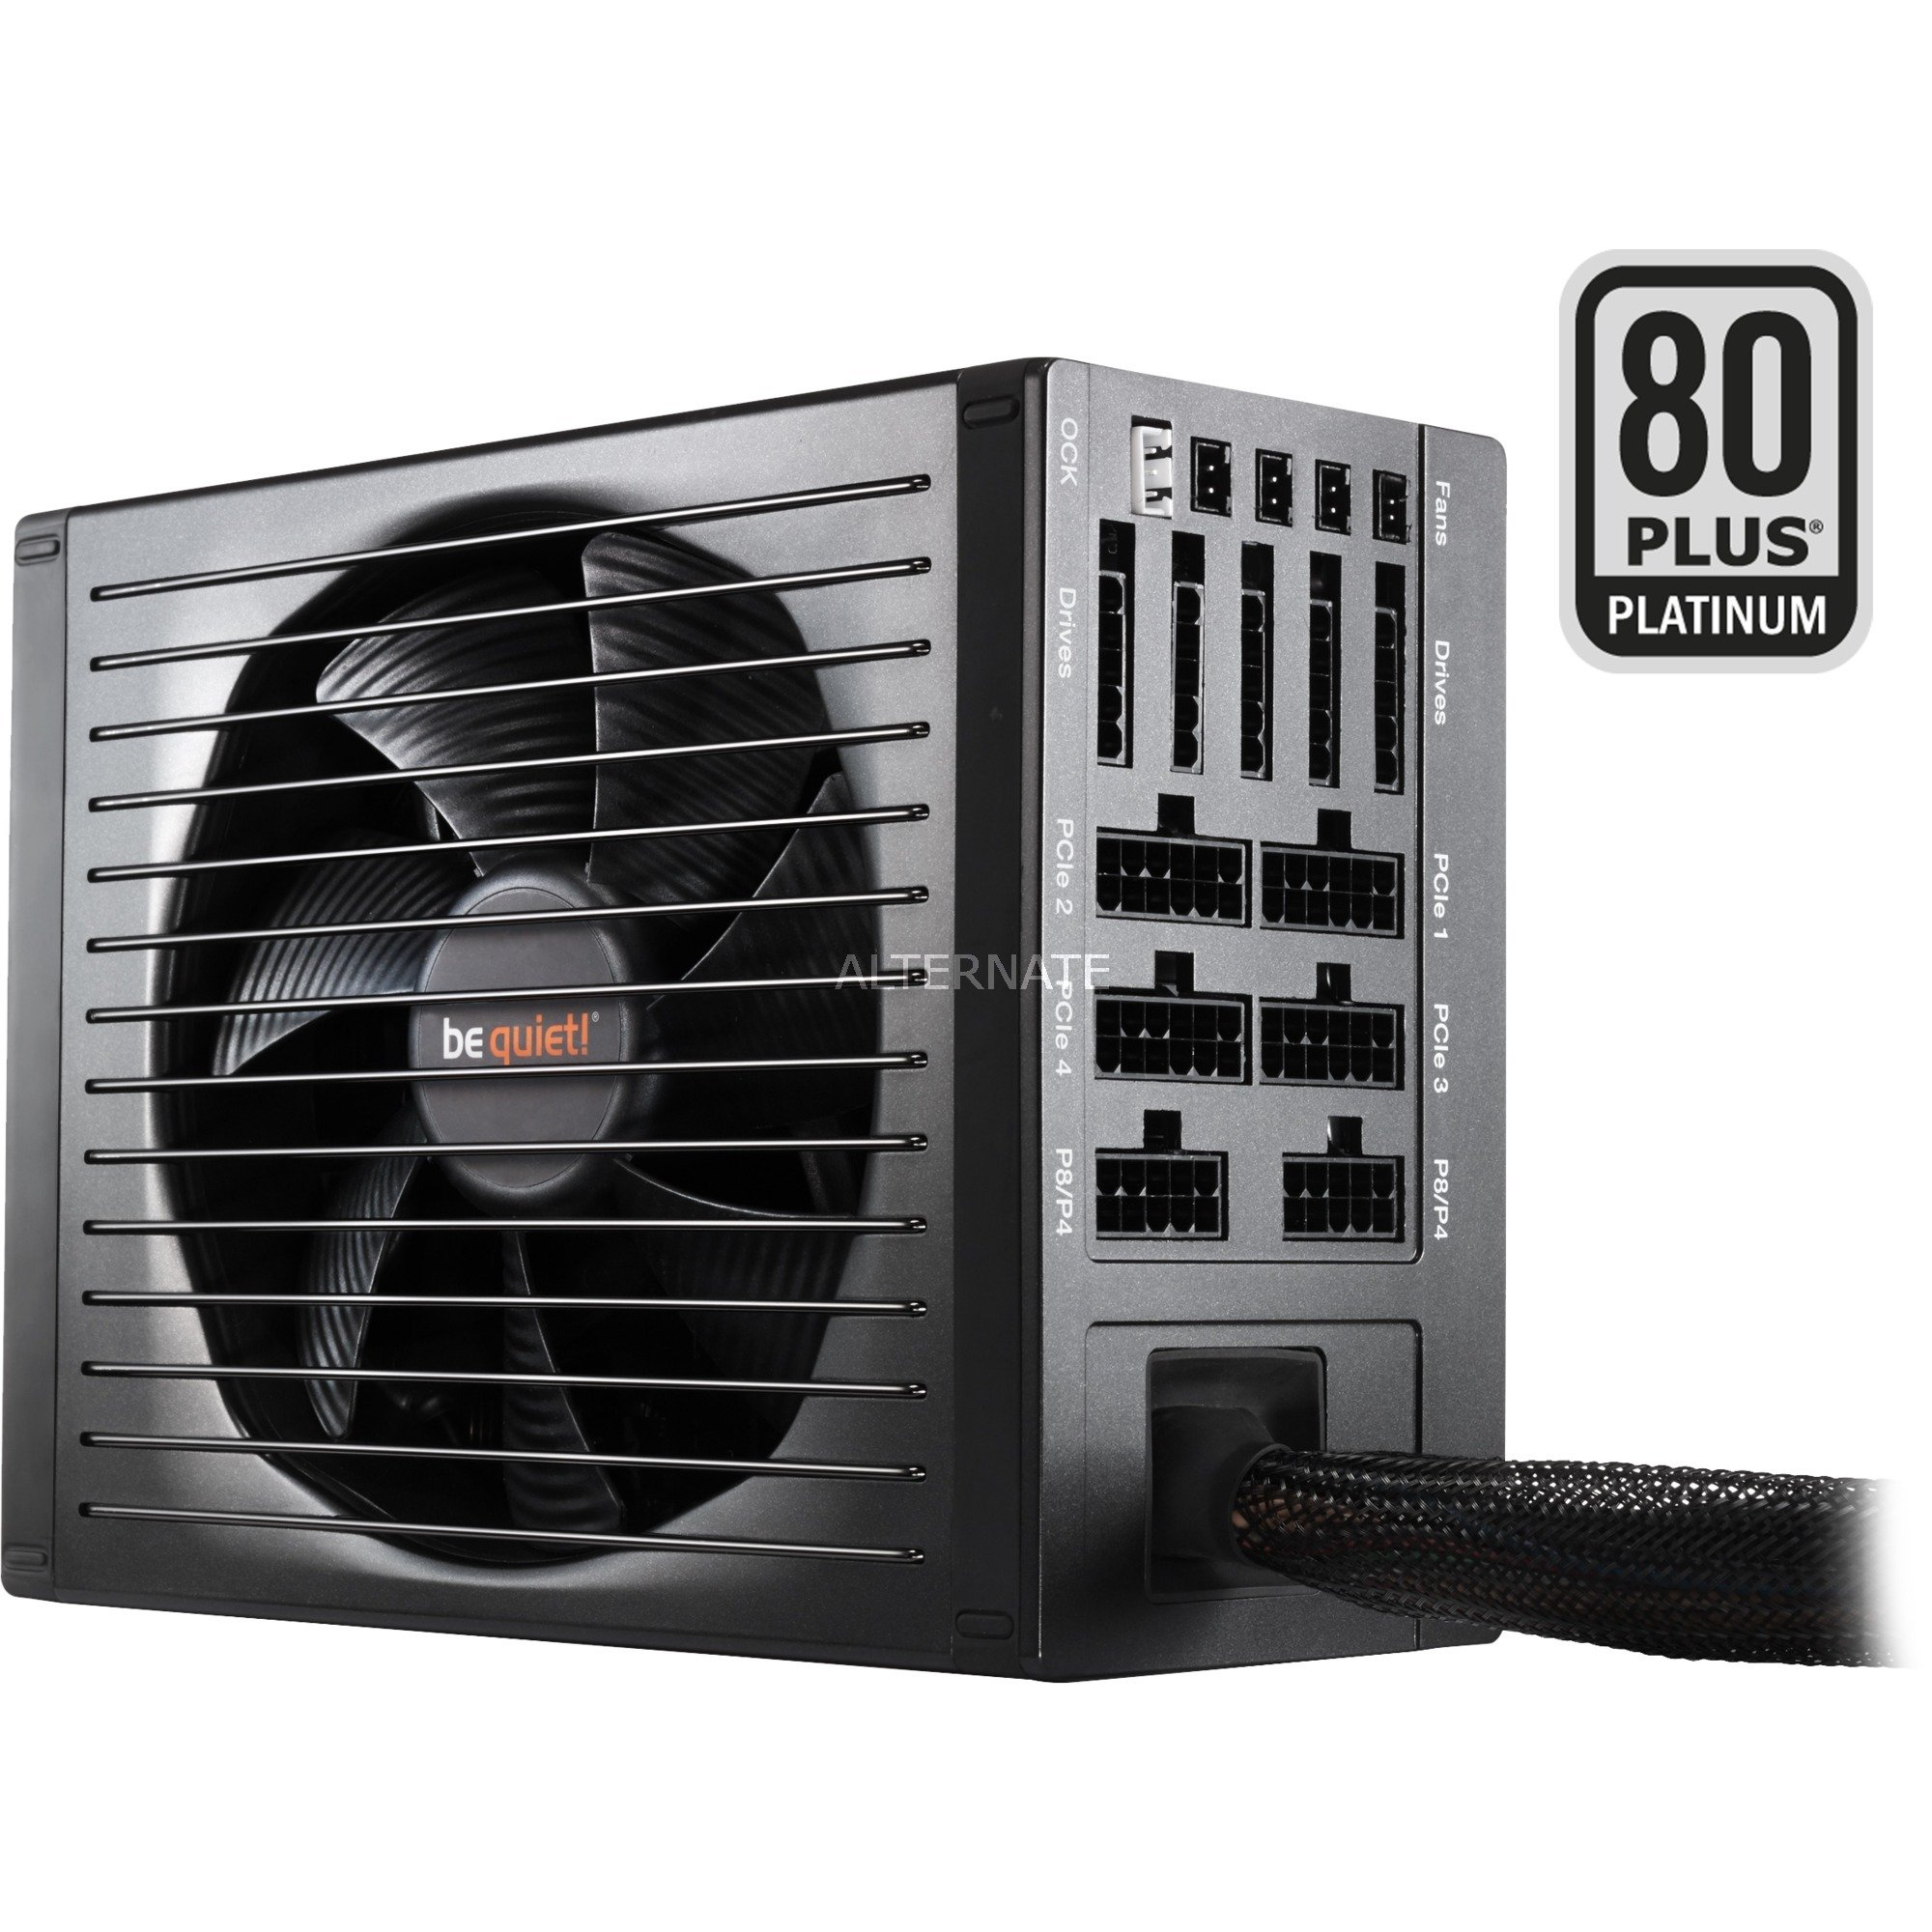 DARK POWER PRO 11 850W